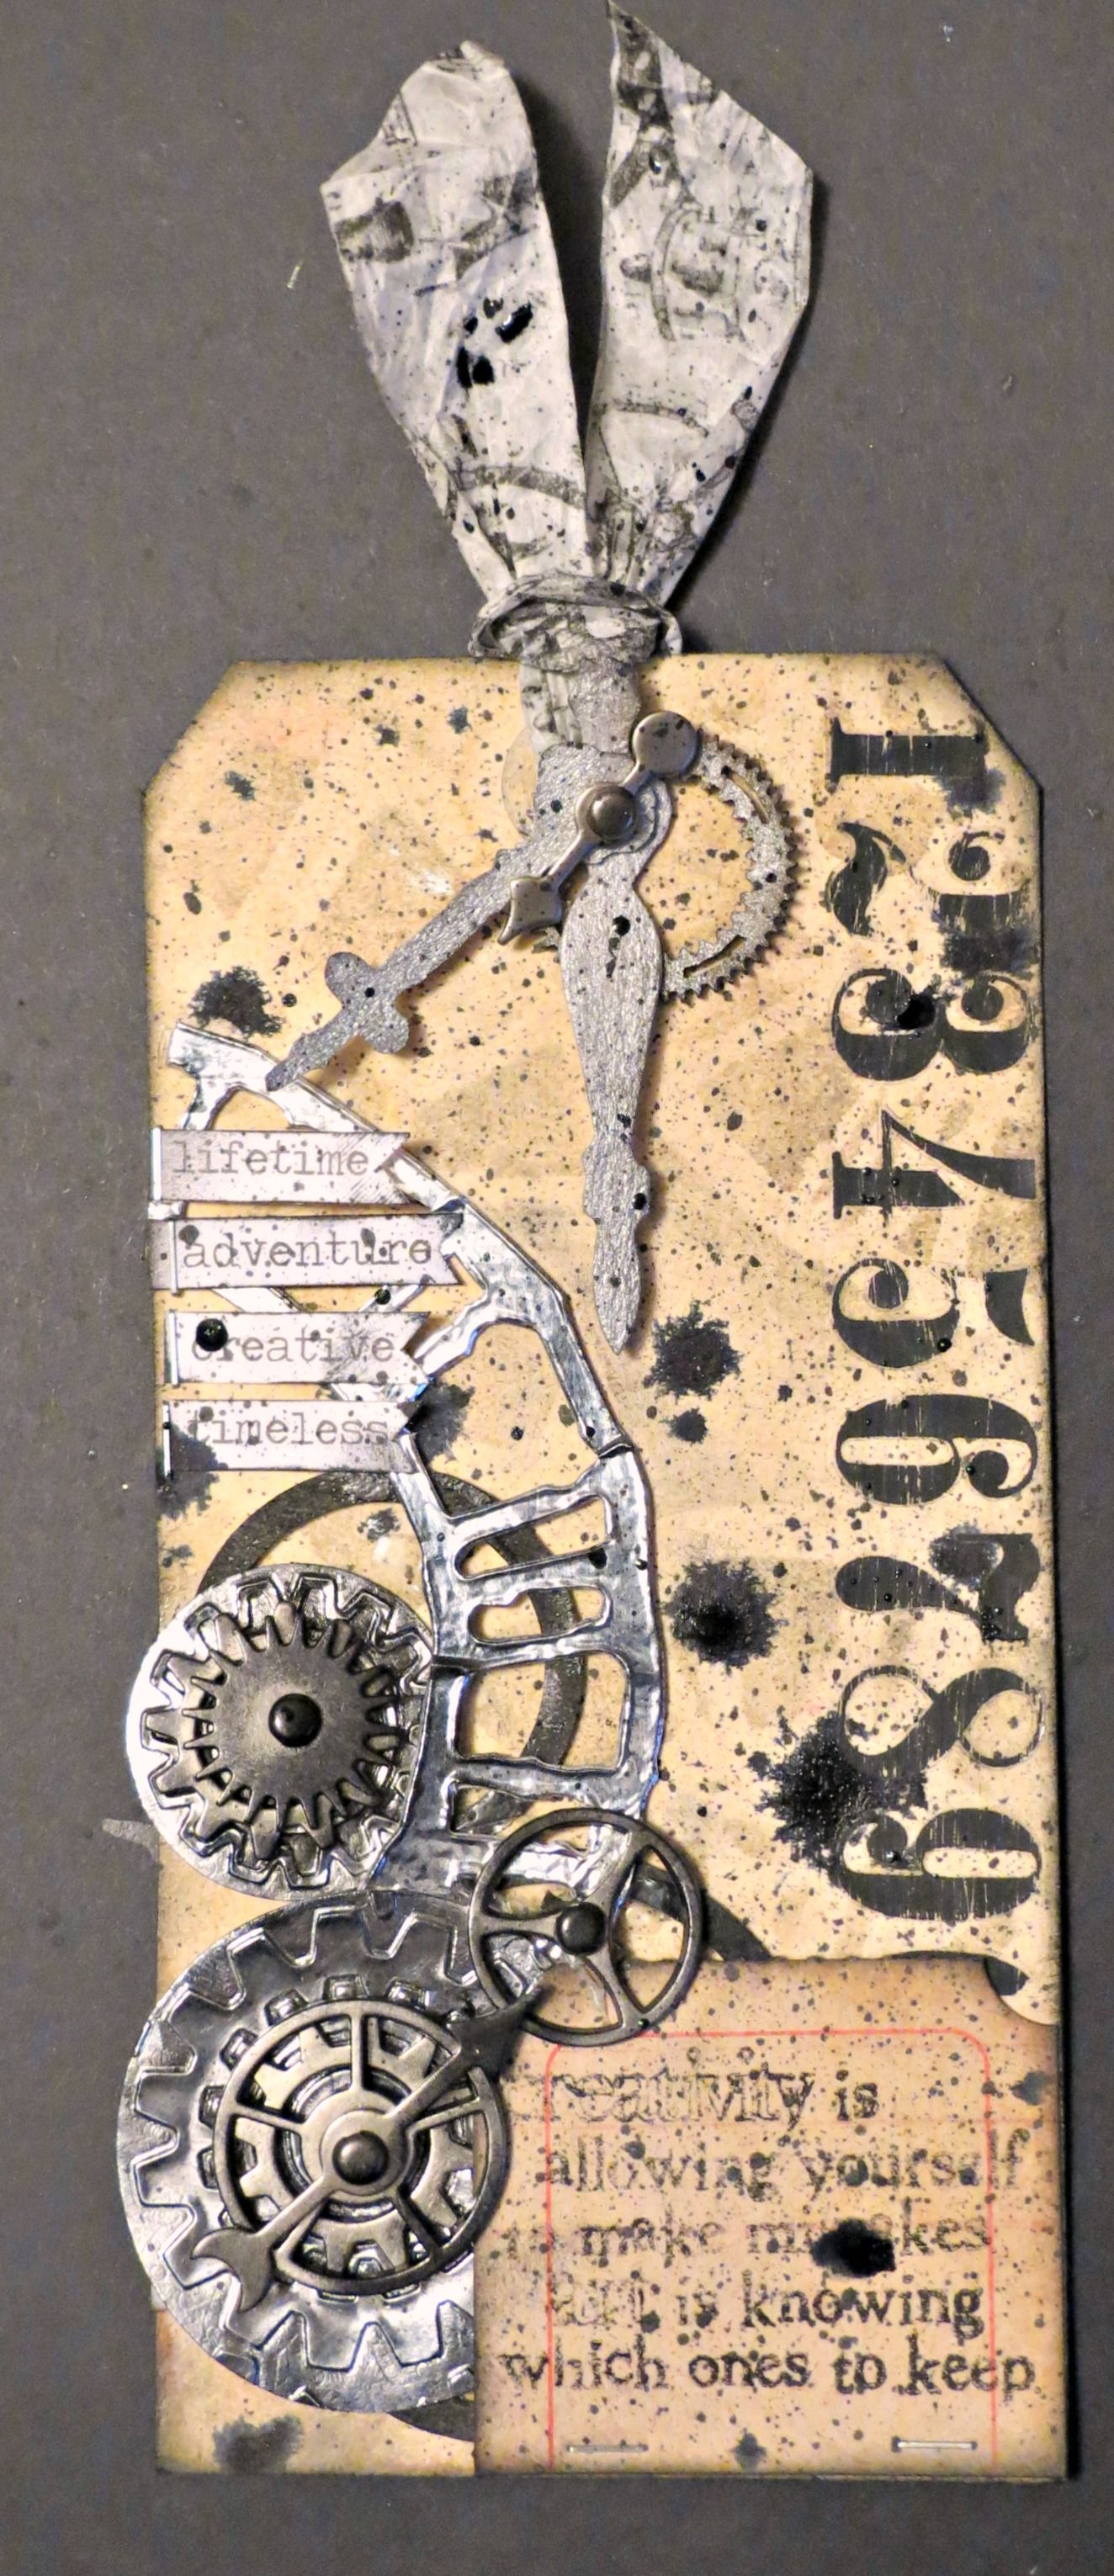 January @Tim Harbour Harbour Harbour Harbour Harbour Harbour Harbour Holtz  Tag http://nicollelovesscrapbooking.blogspot.com/2014/01/january-tim-holtz-tags-of-2014.html